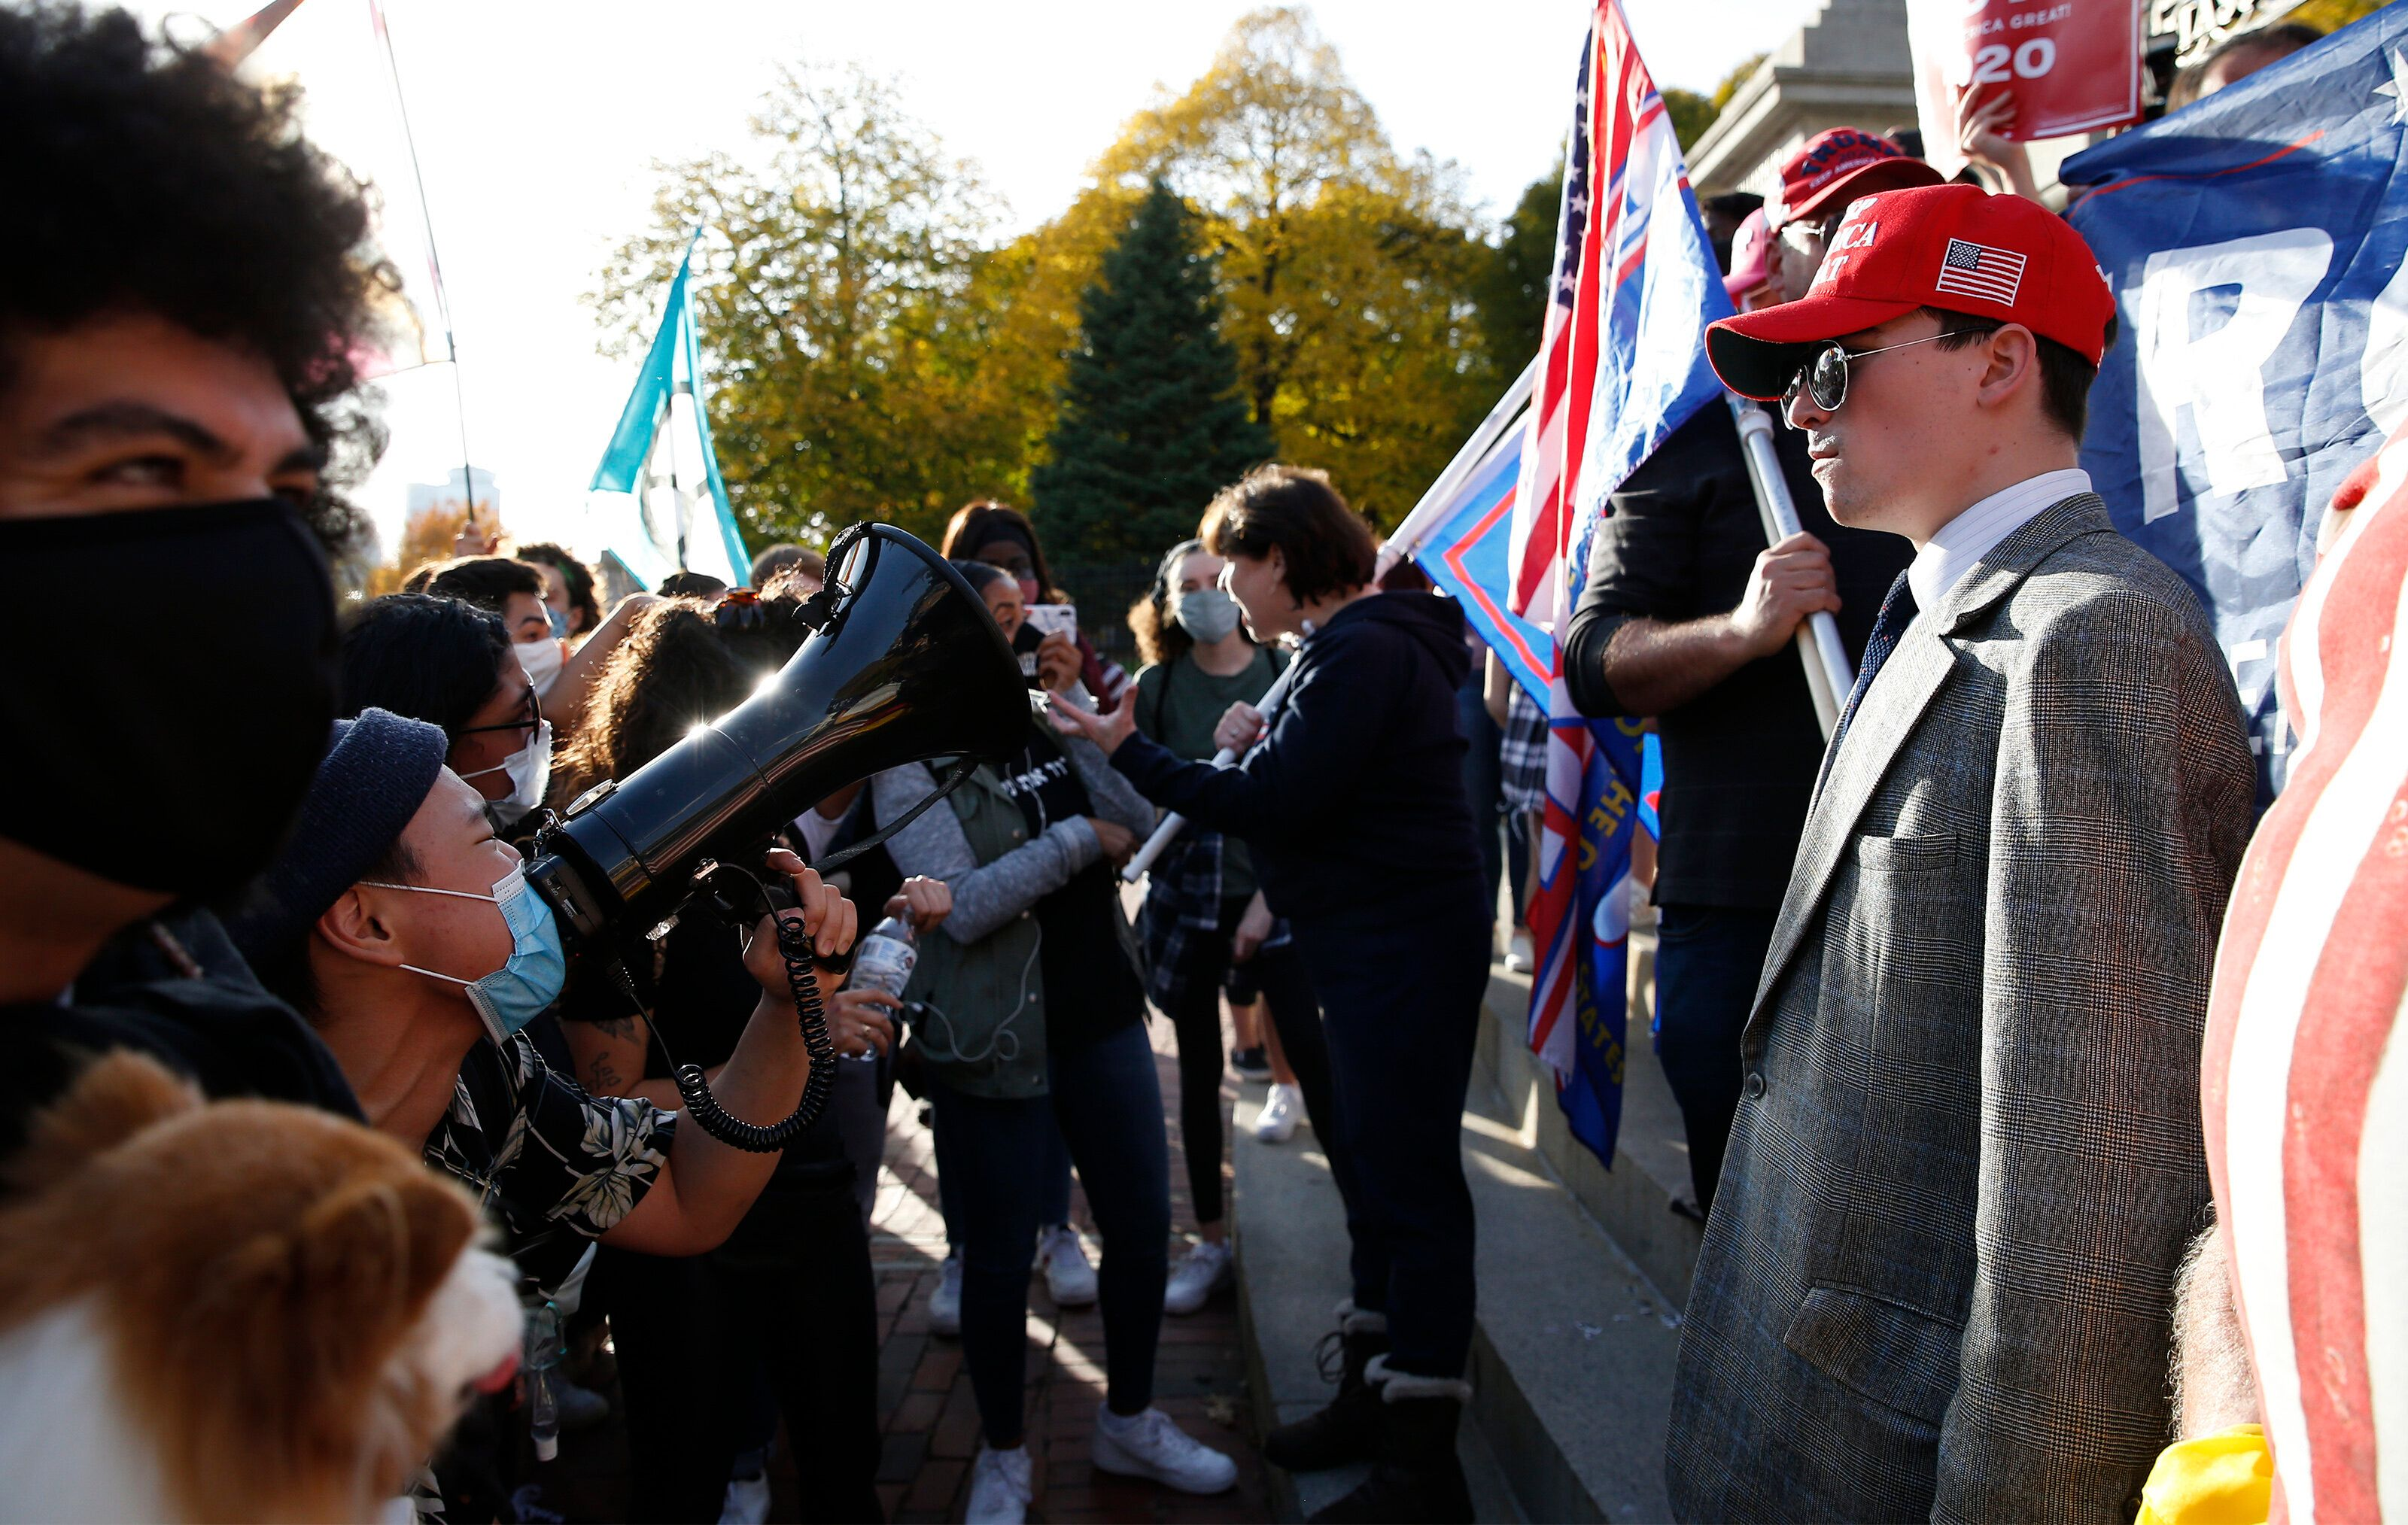 Biden supporters and Trump supporters faced off at the State House in a mostly peaceful confrontation in Boston on Nov. 7, 20